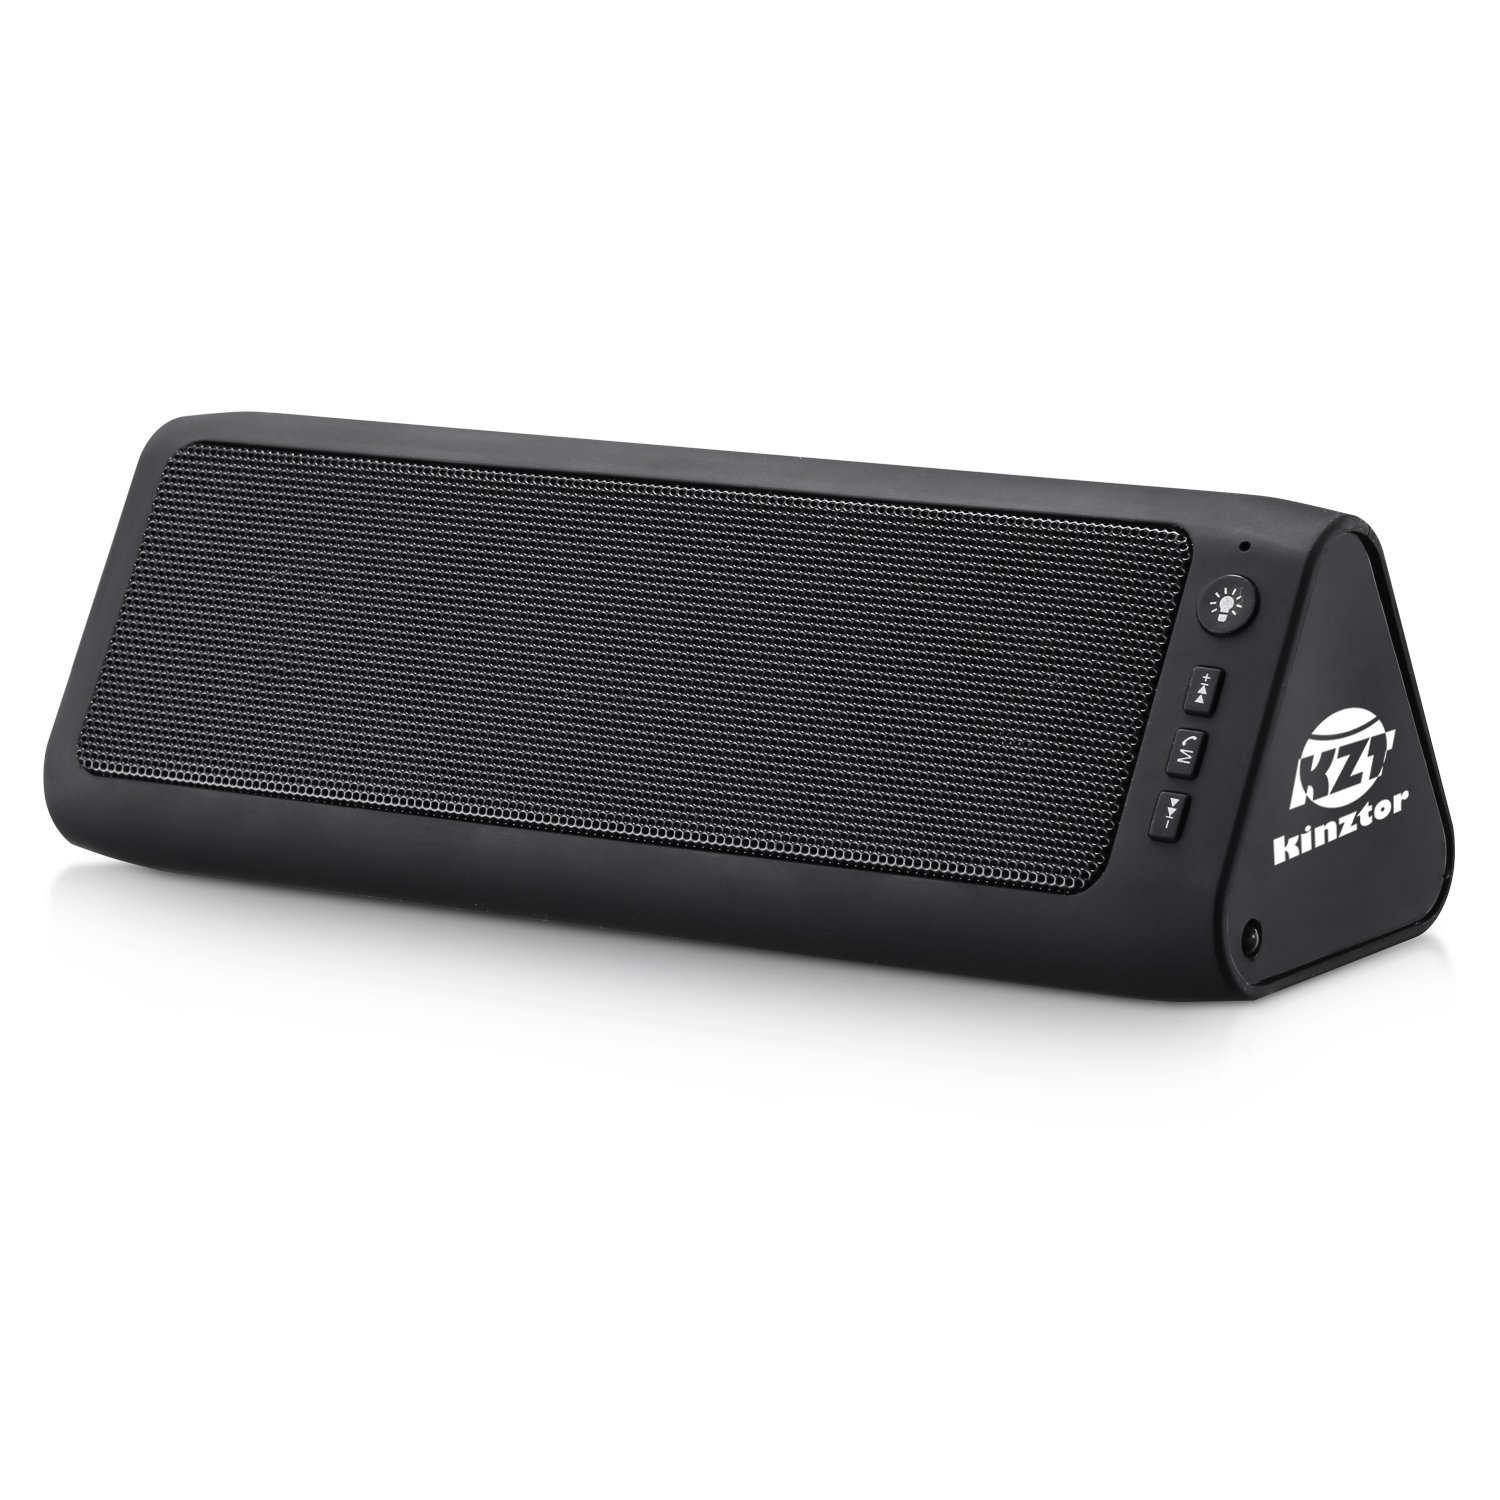 Portable Bluetooth Speaker Kinztor Angle 3 Louder Volume 6W Power Perfect Wireless Speaker with LED light for Home Travel Perfect Wireless Speaker for iPhone, Samsung and more (Black)